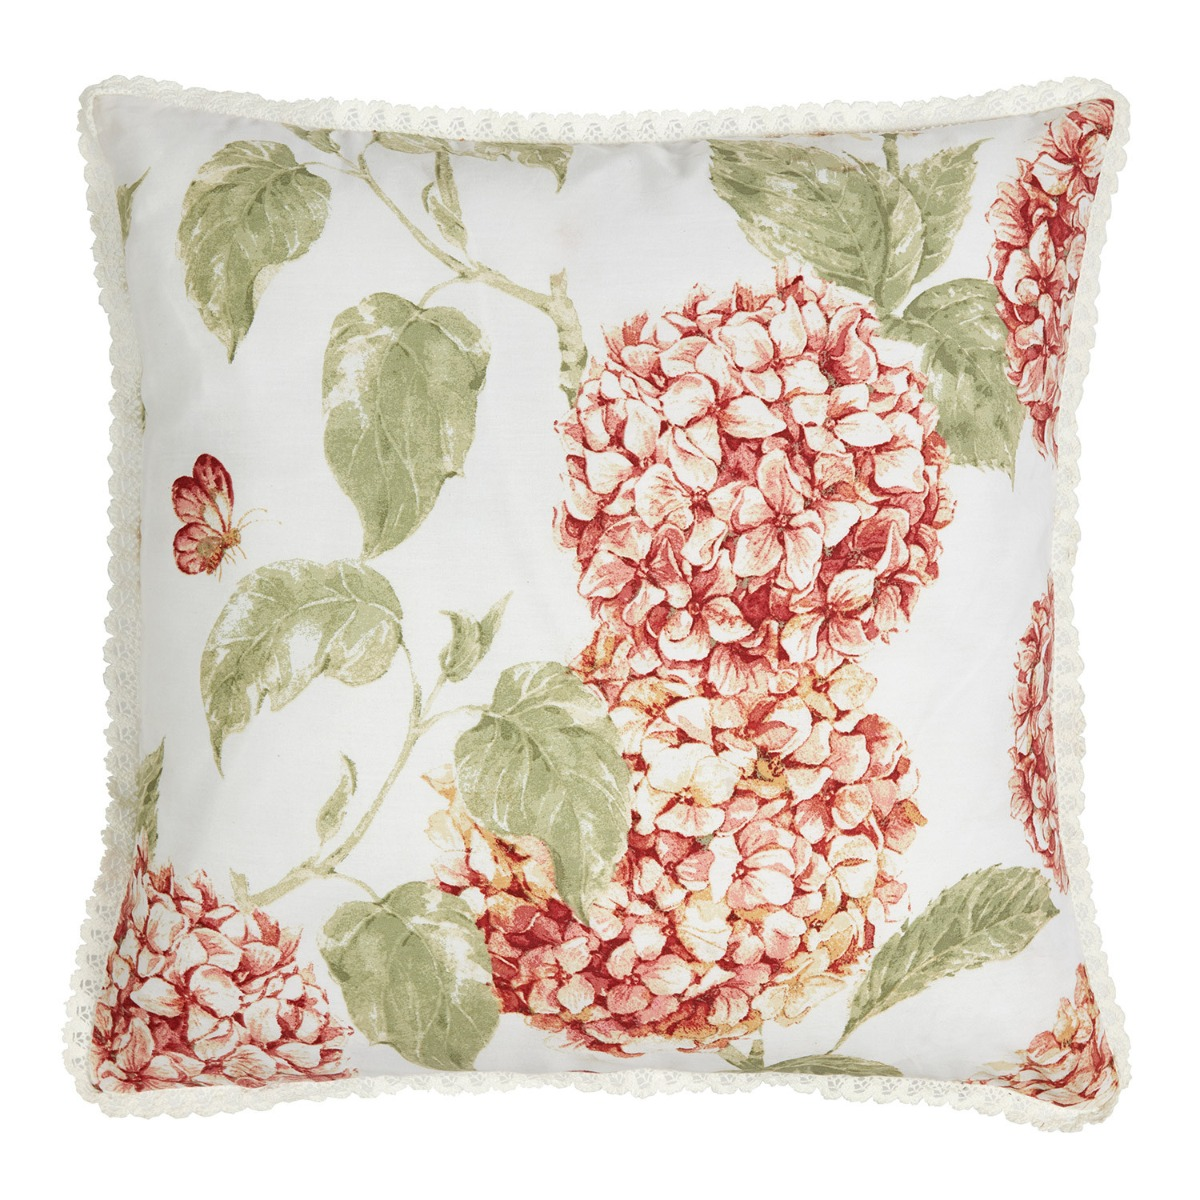 Bloomsbury Autumn Square Filled Cushion